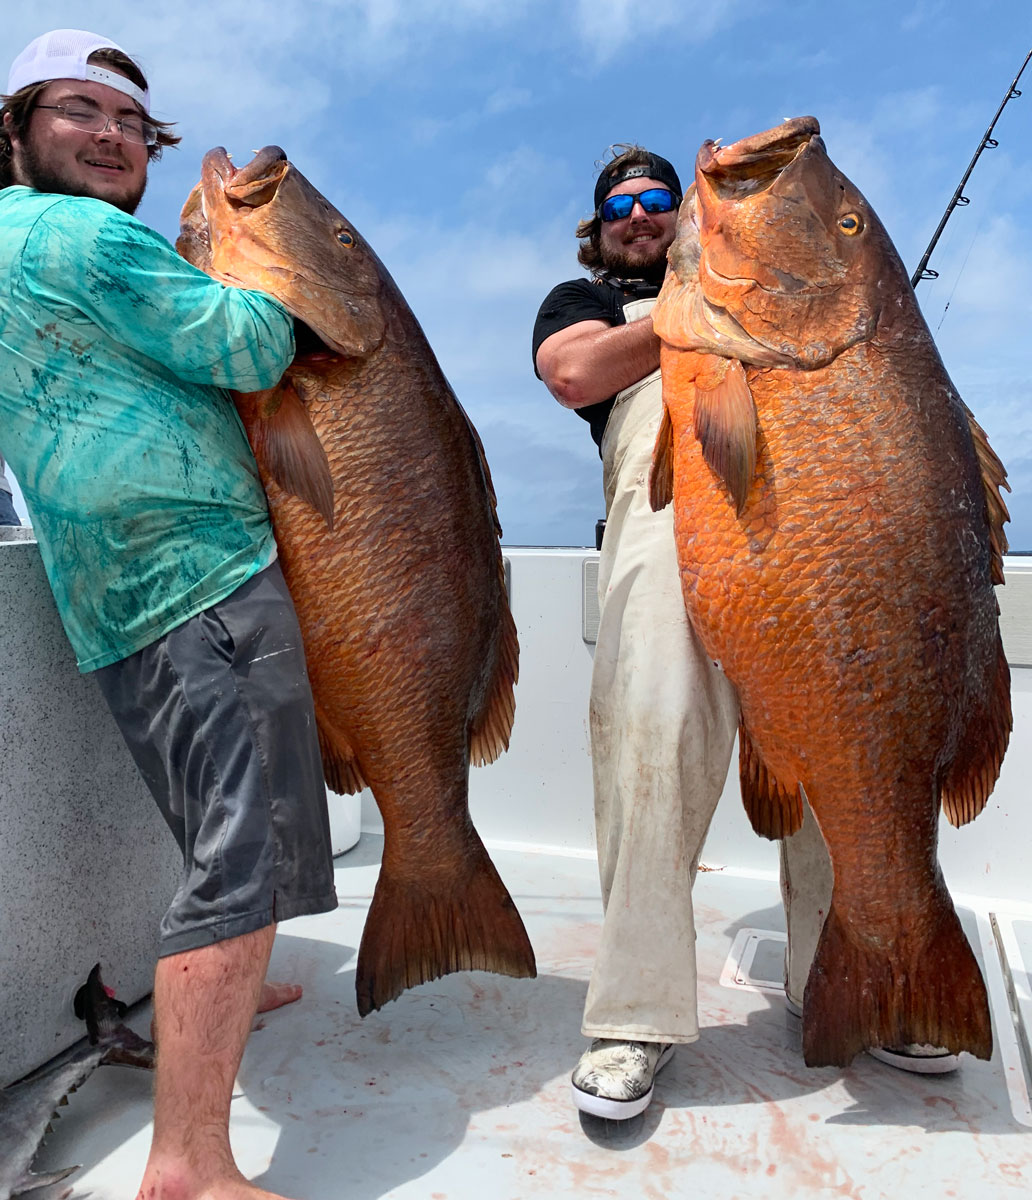 Baton Rouge brothers Alex Maciasz, left, and charter skipper Joey Maciasz hold the two cubera snapper destined to place in the Louisiana Top 10 Fish Records List. The cubera at left weighed 85 pounds and was caught by Luke Hodges. The one at right is holding weighed 100.5 pounds and came after a near 30-minute battle by Jeff Thompson to get it in the boat in mid-May.